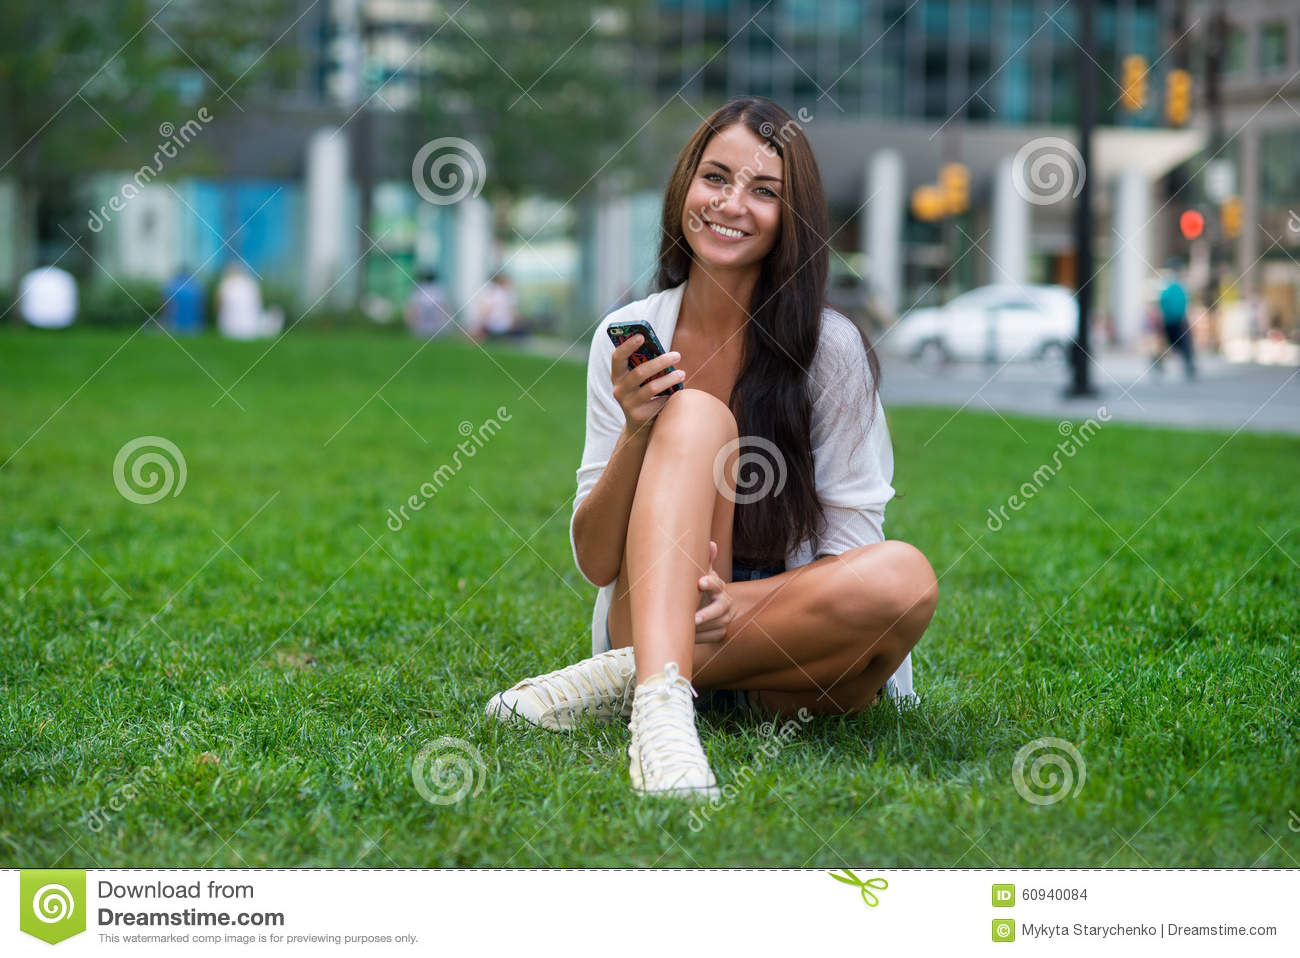 green park single women Free classified ads for women seeking men and everything else find what you are looking for or create your own ad for free  single young woman,.